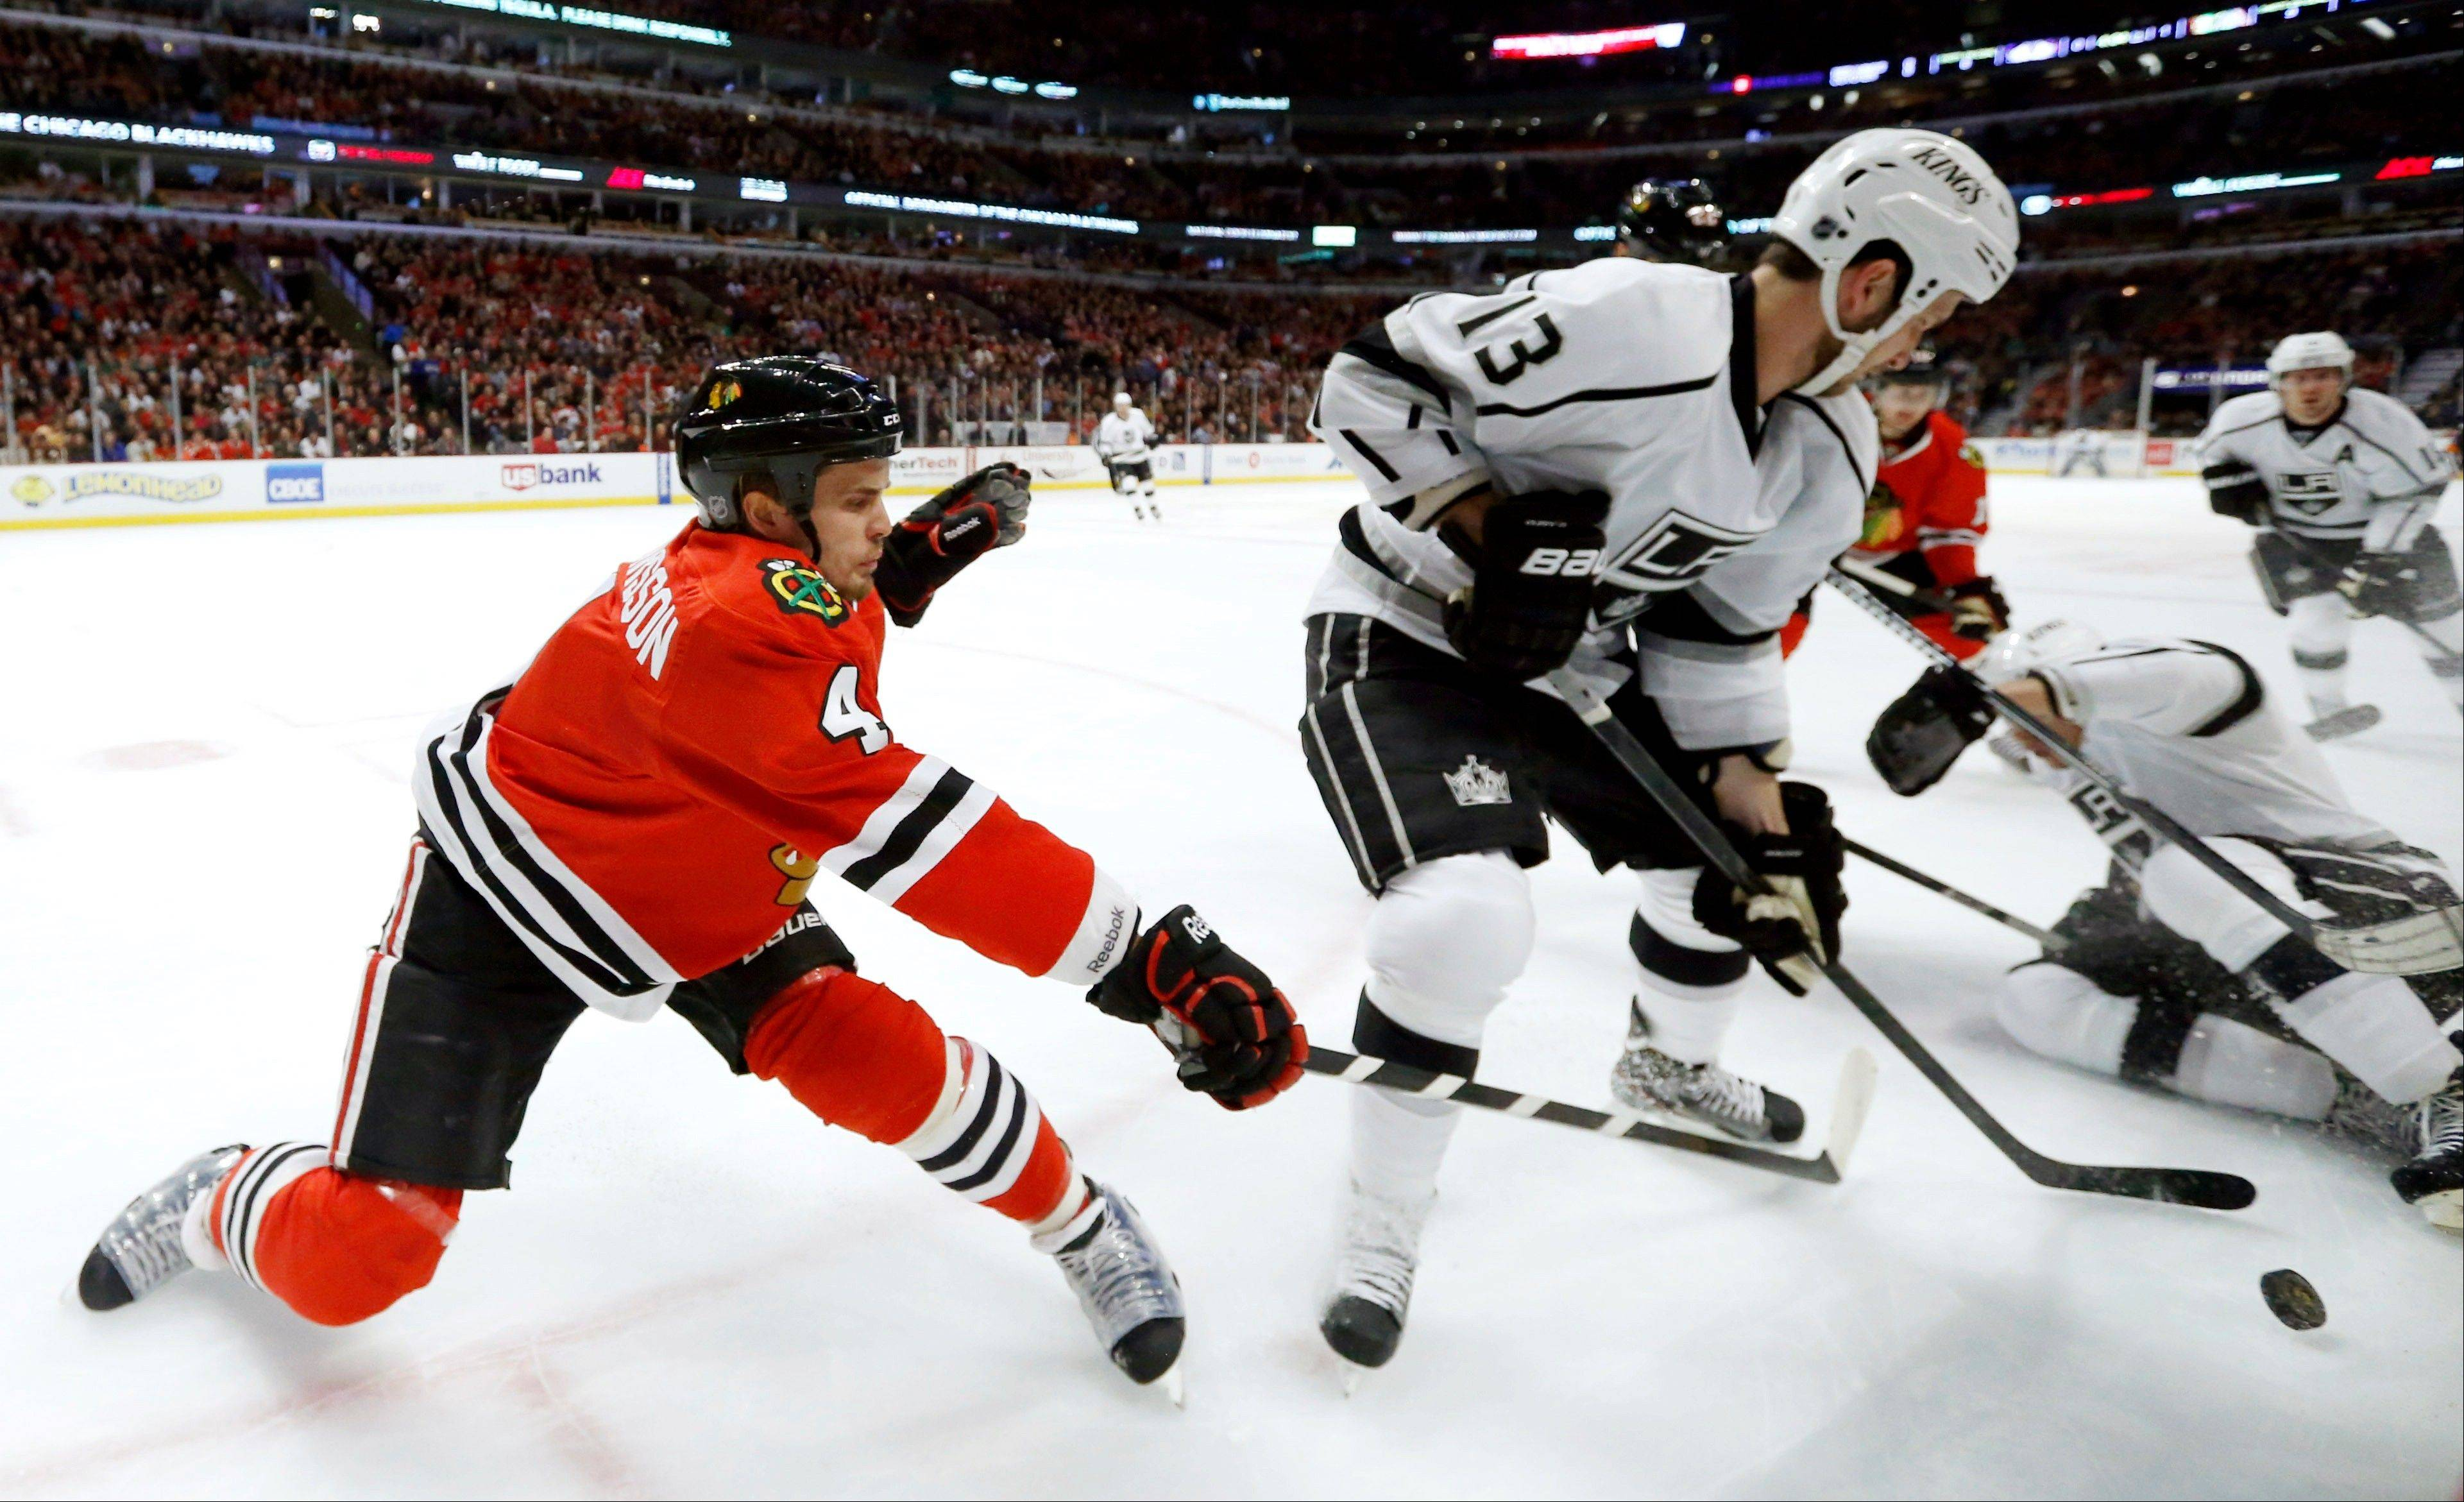 Chicago Blackhawks defenseman Niklas Hjalmarsson (4), of Sweden, battles Los Angeles Kings center Tyler Toffoli for a loose puck during the first period of an NHL hockey game, Monday, March 25, 2013, in Chicago.